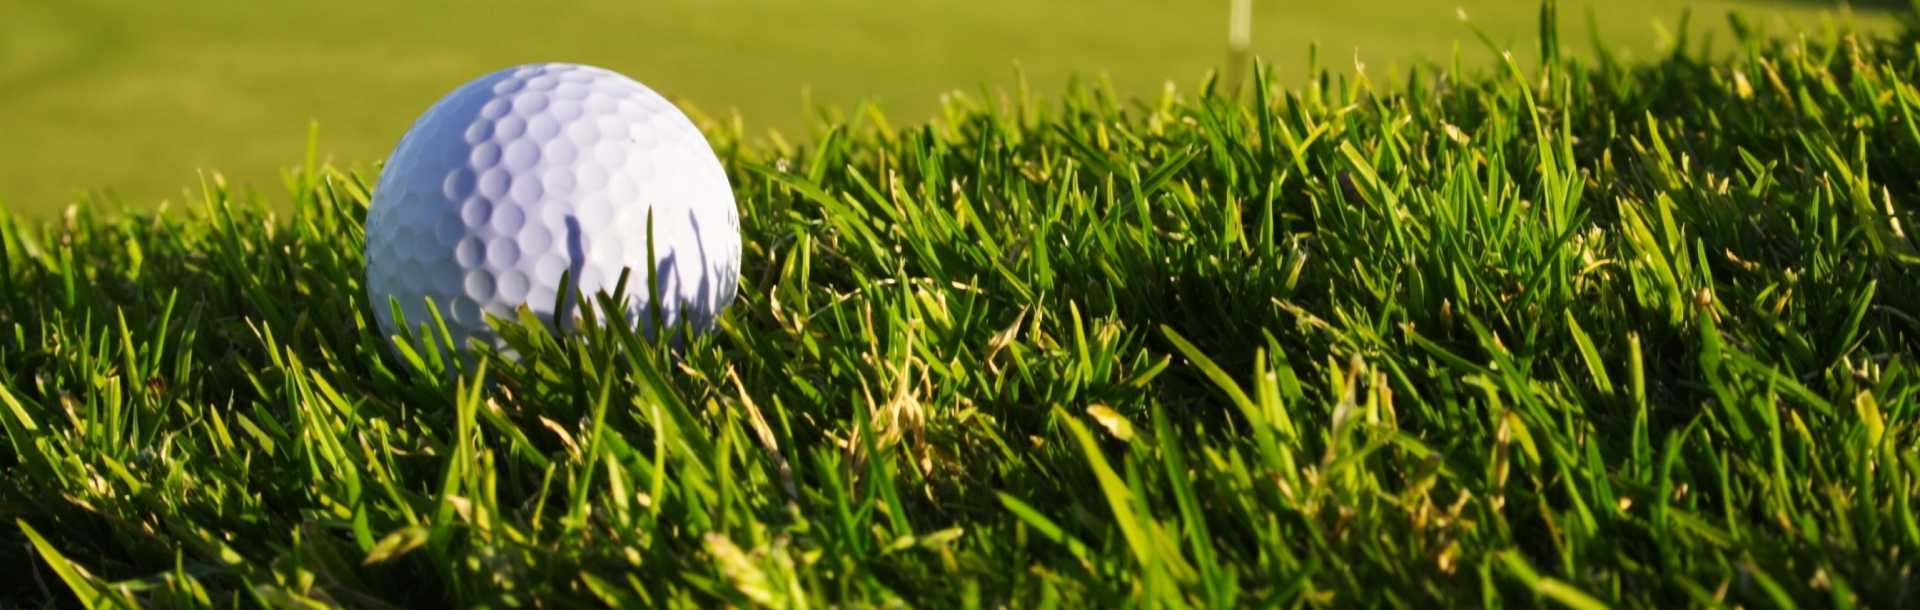 Golf-Ball-On-Grass-Macro-Wallpaper-HD